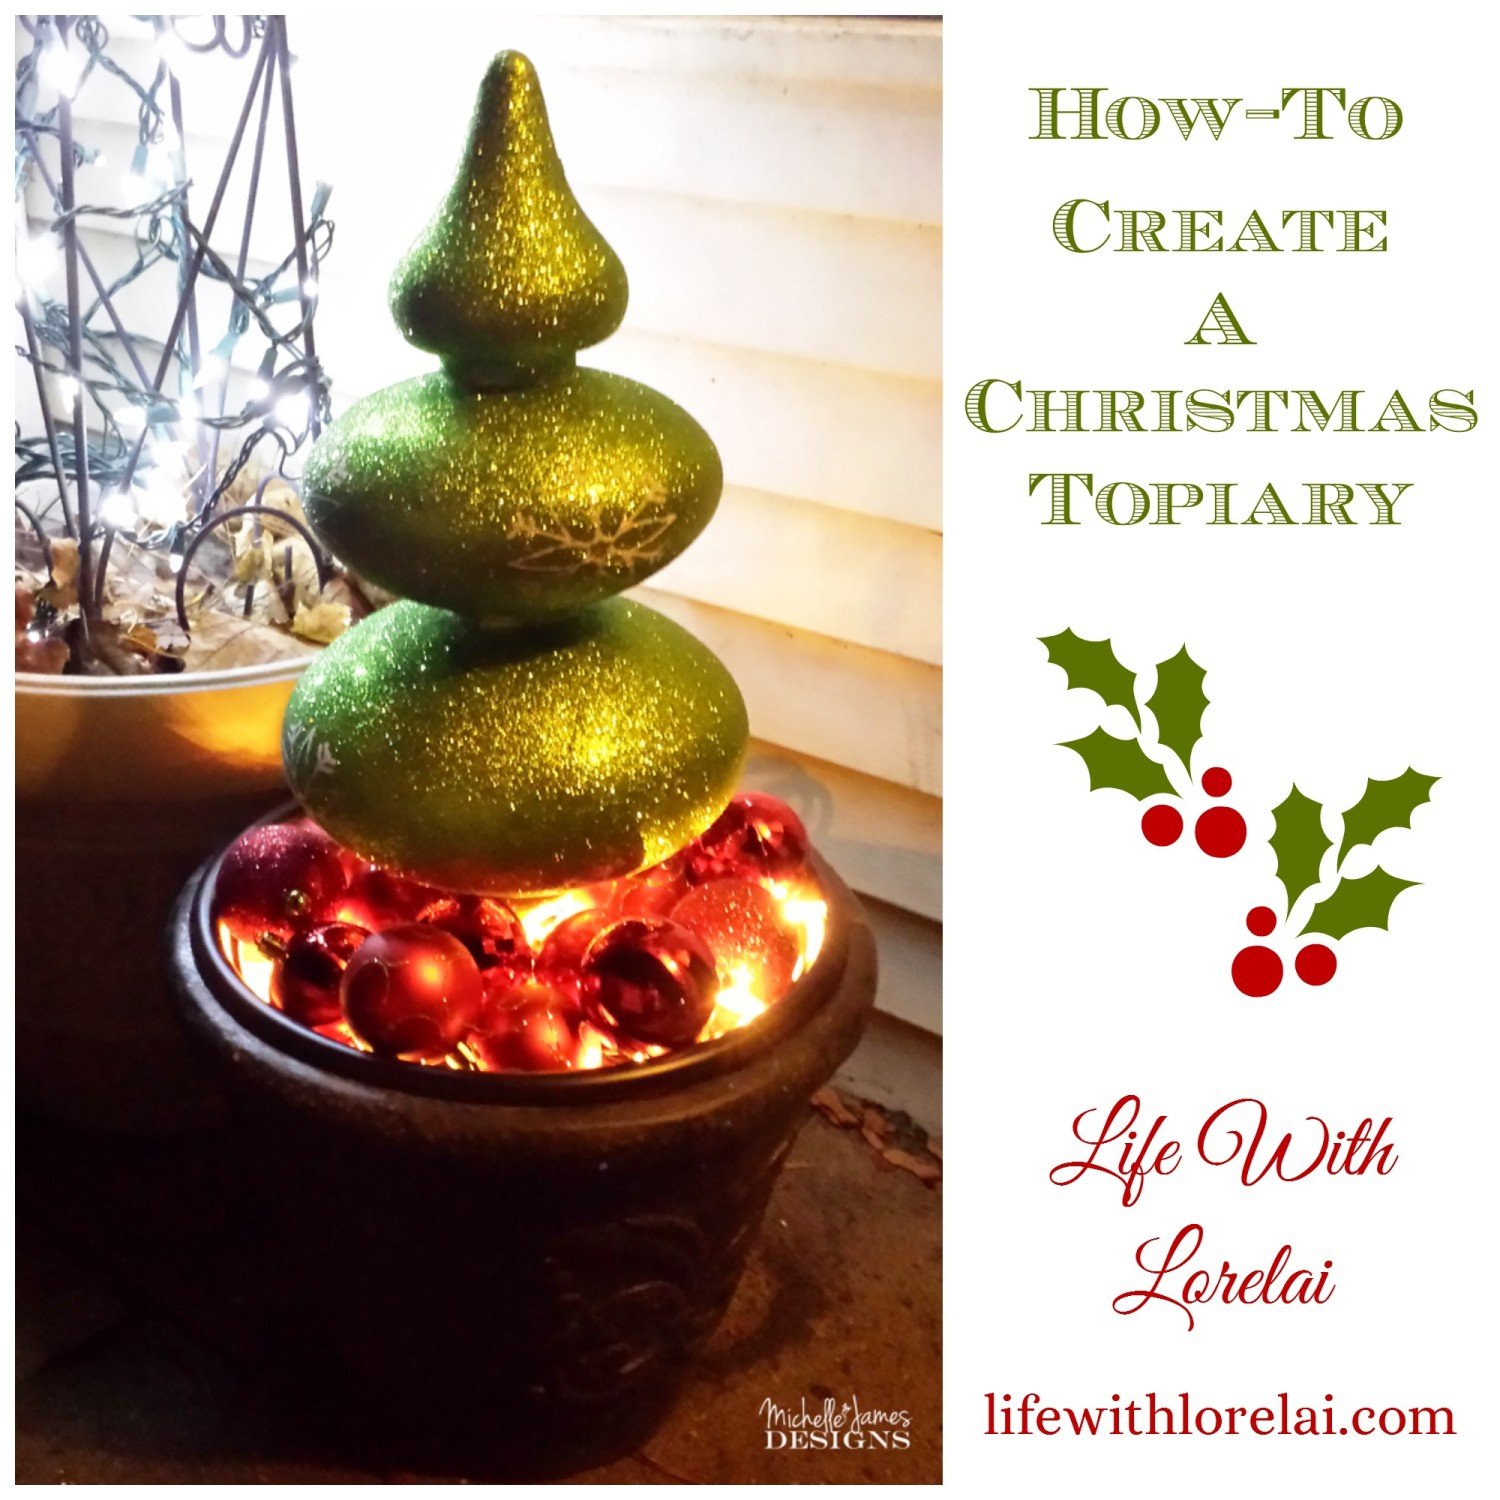 how to create a christmas topiary life with lorelai - Christmas Topiary